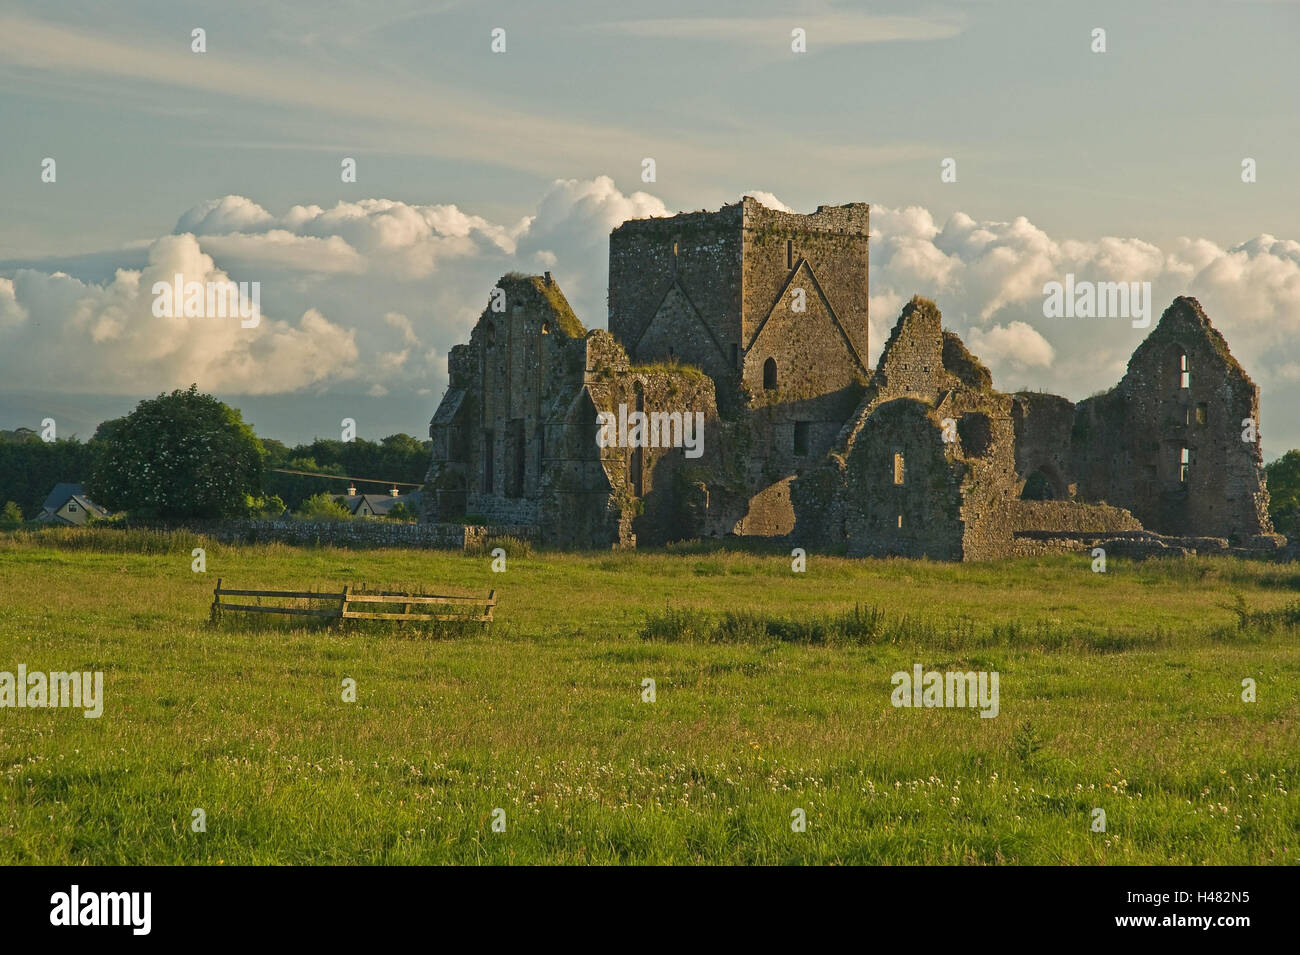 L'Irlande, Hore Abbey, cloître ruine, Photo Stock